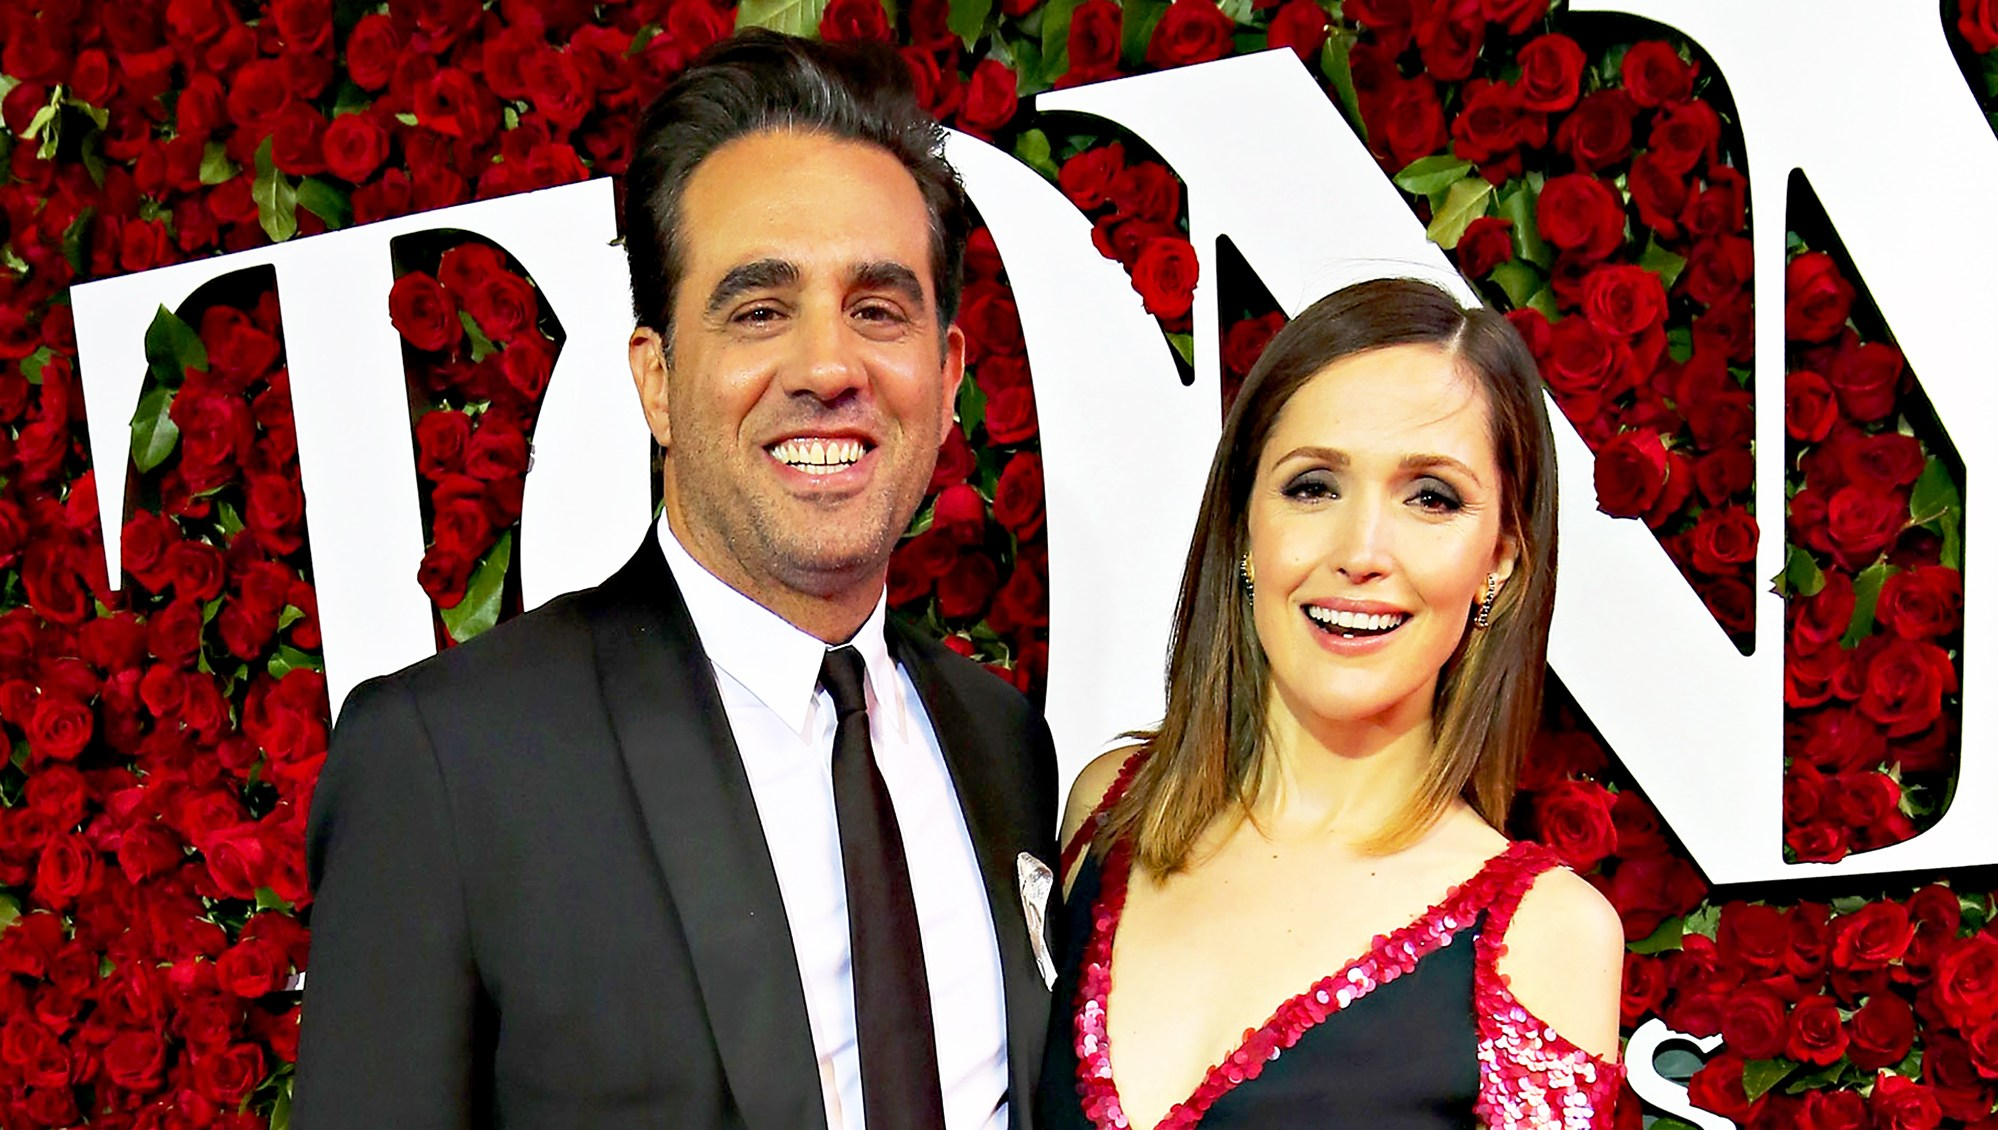 Bobby Cannavale and Rose Byrne attend the 70th Annual Tony Awards at The Beacon Theatre in New York City.